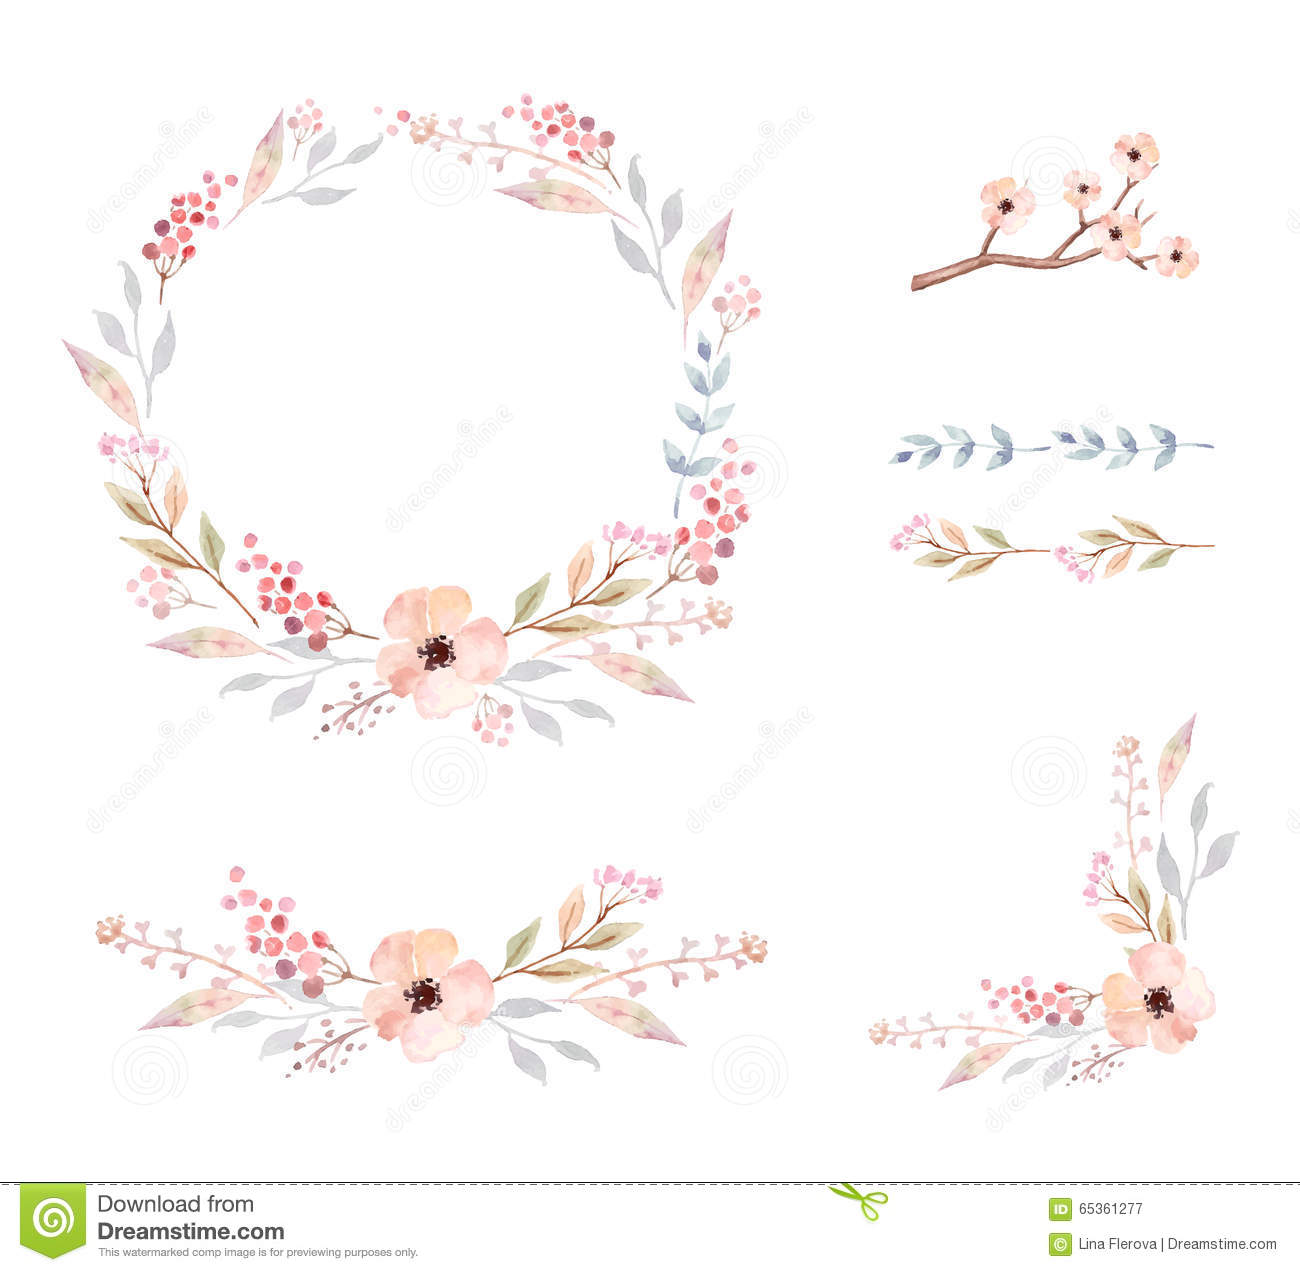 Floral Frame. Set of cute watercolor flowers.